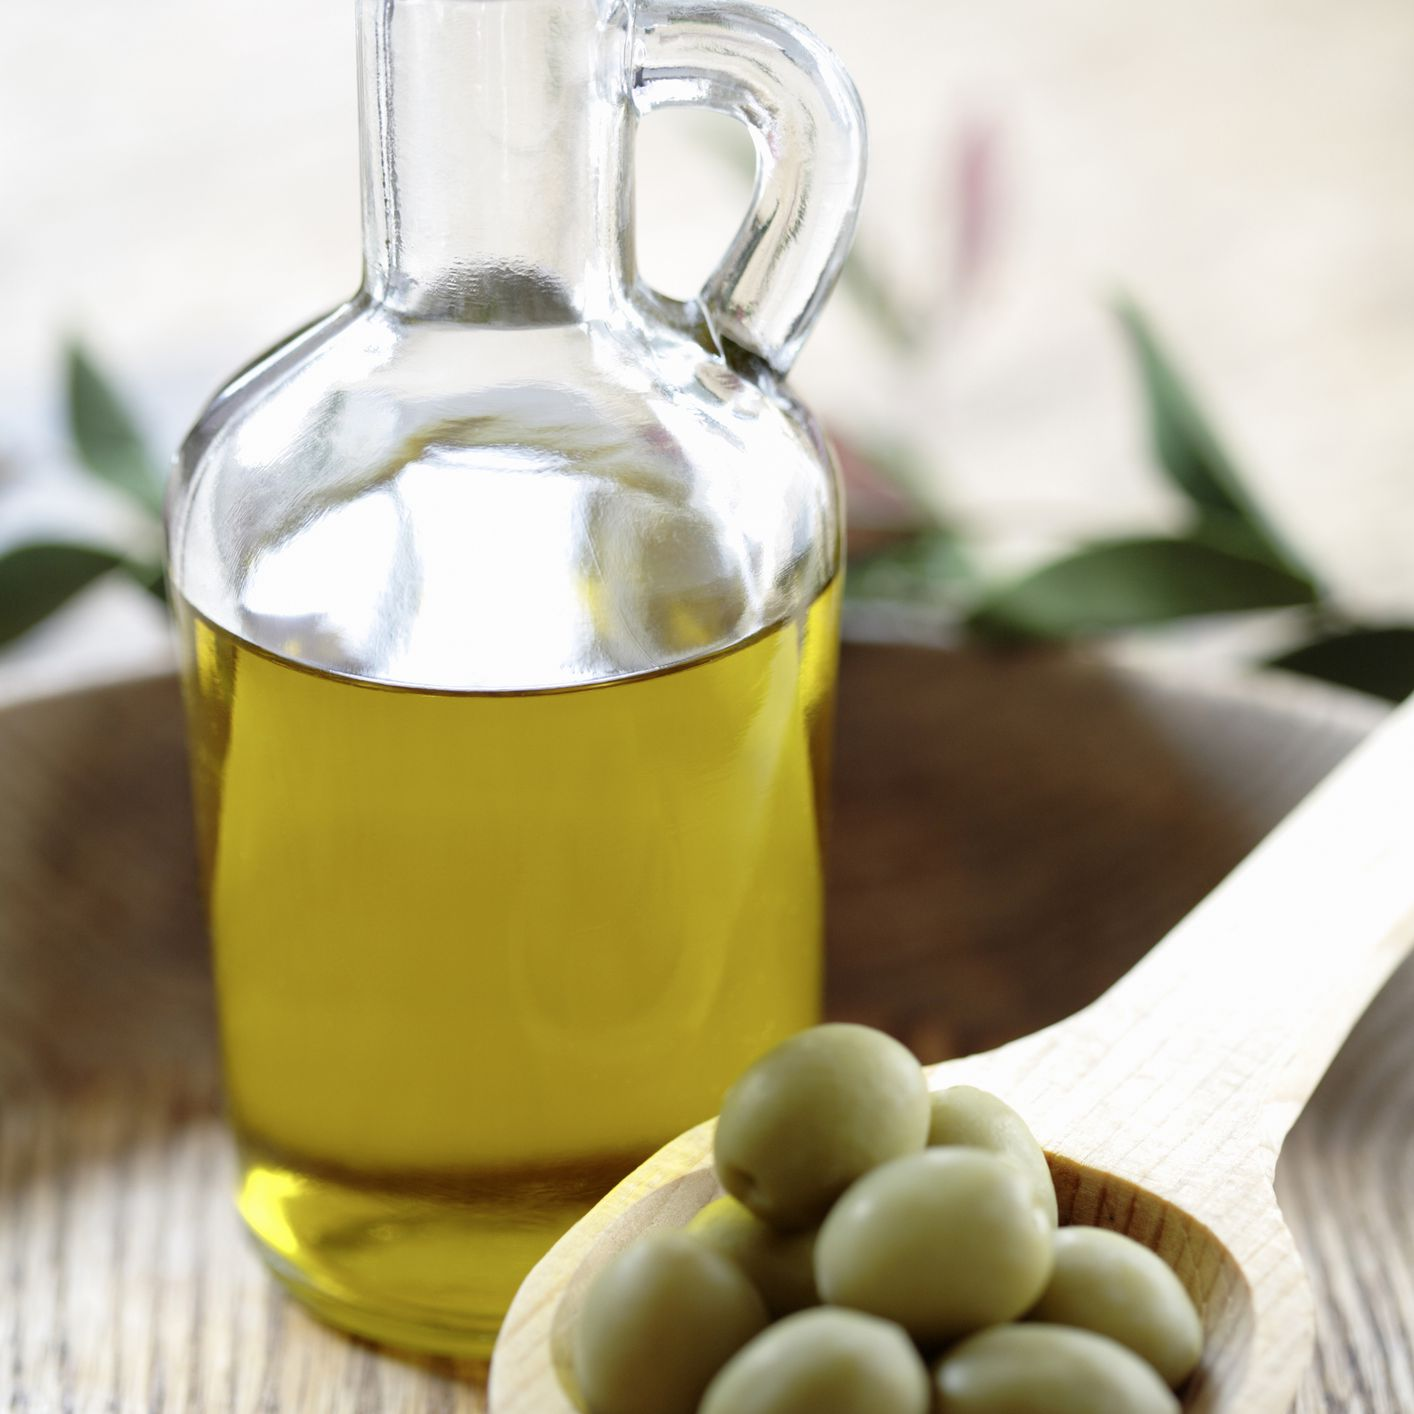 Can You Use Olive Oil for Your Skin? A